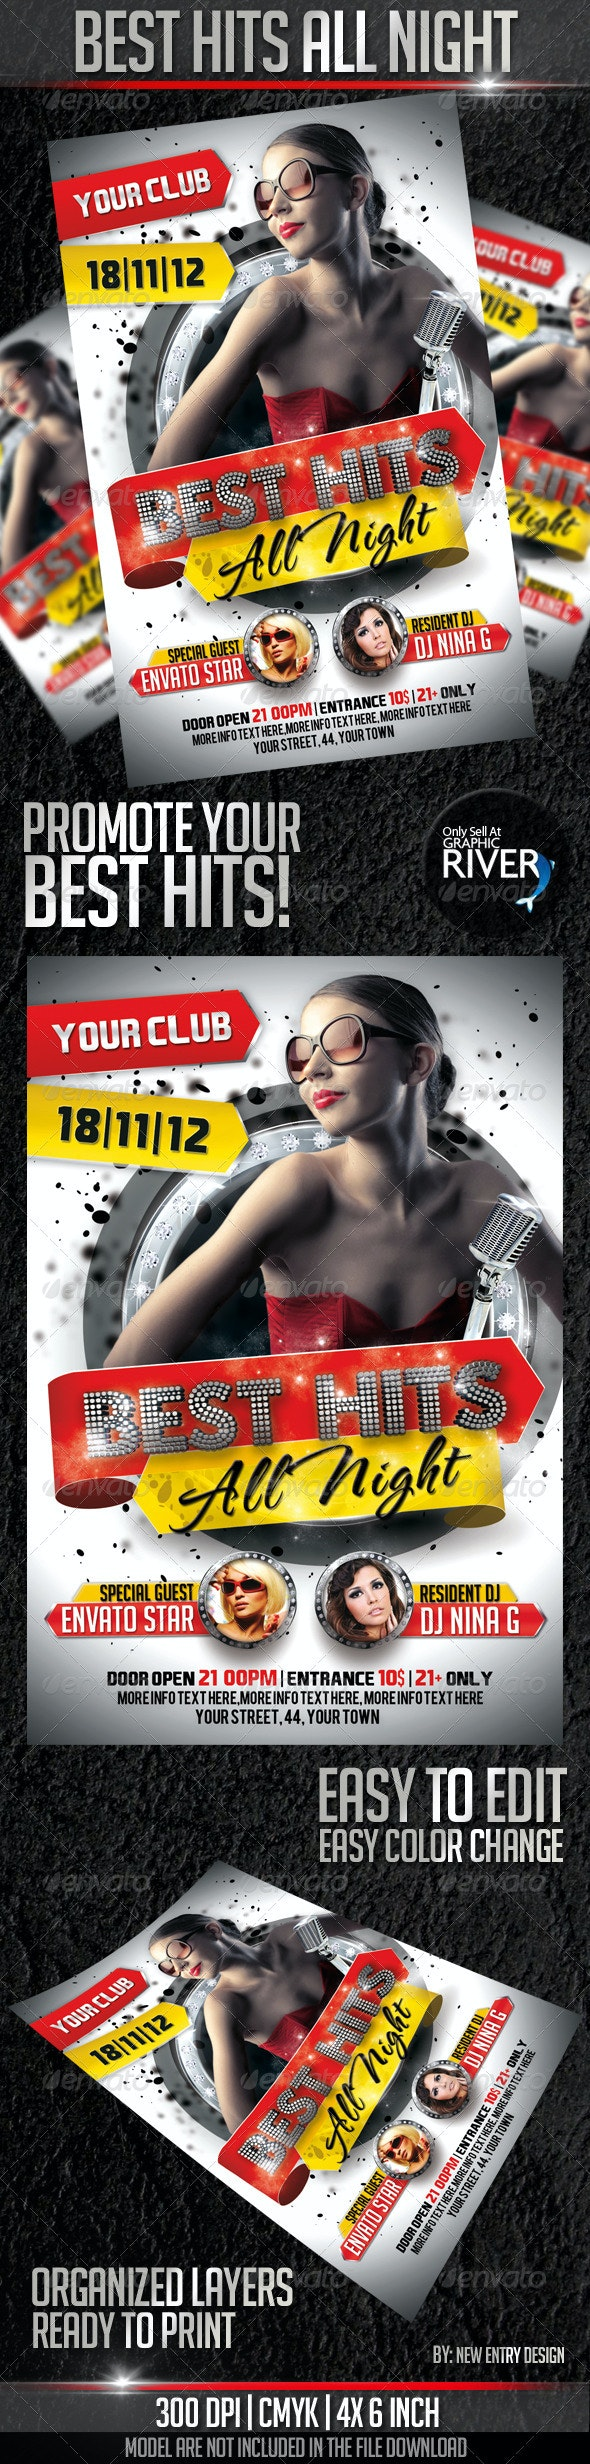 Hits All Night Flyer Template - Clubs & Parties Events